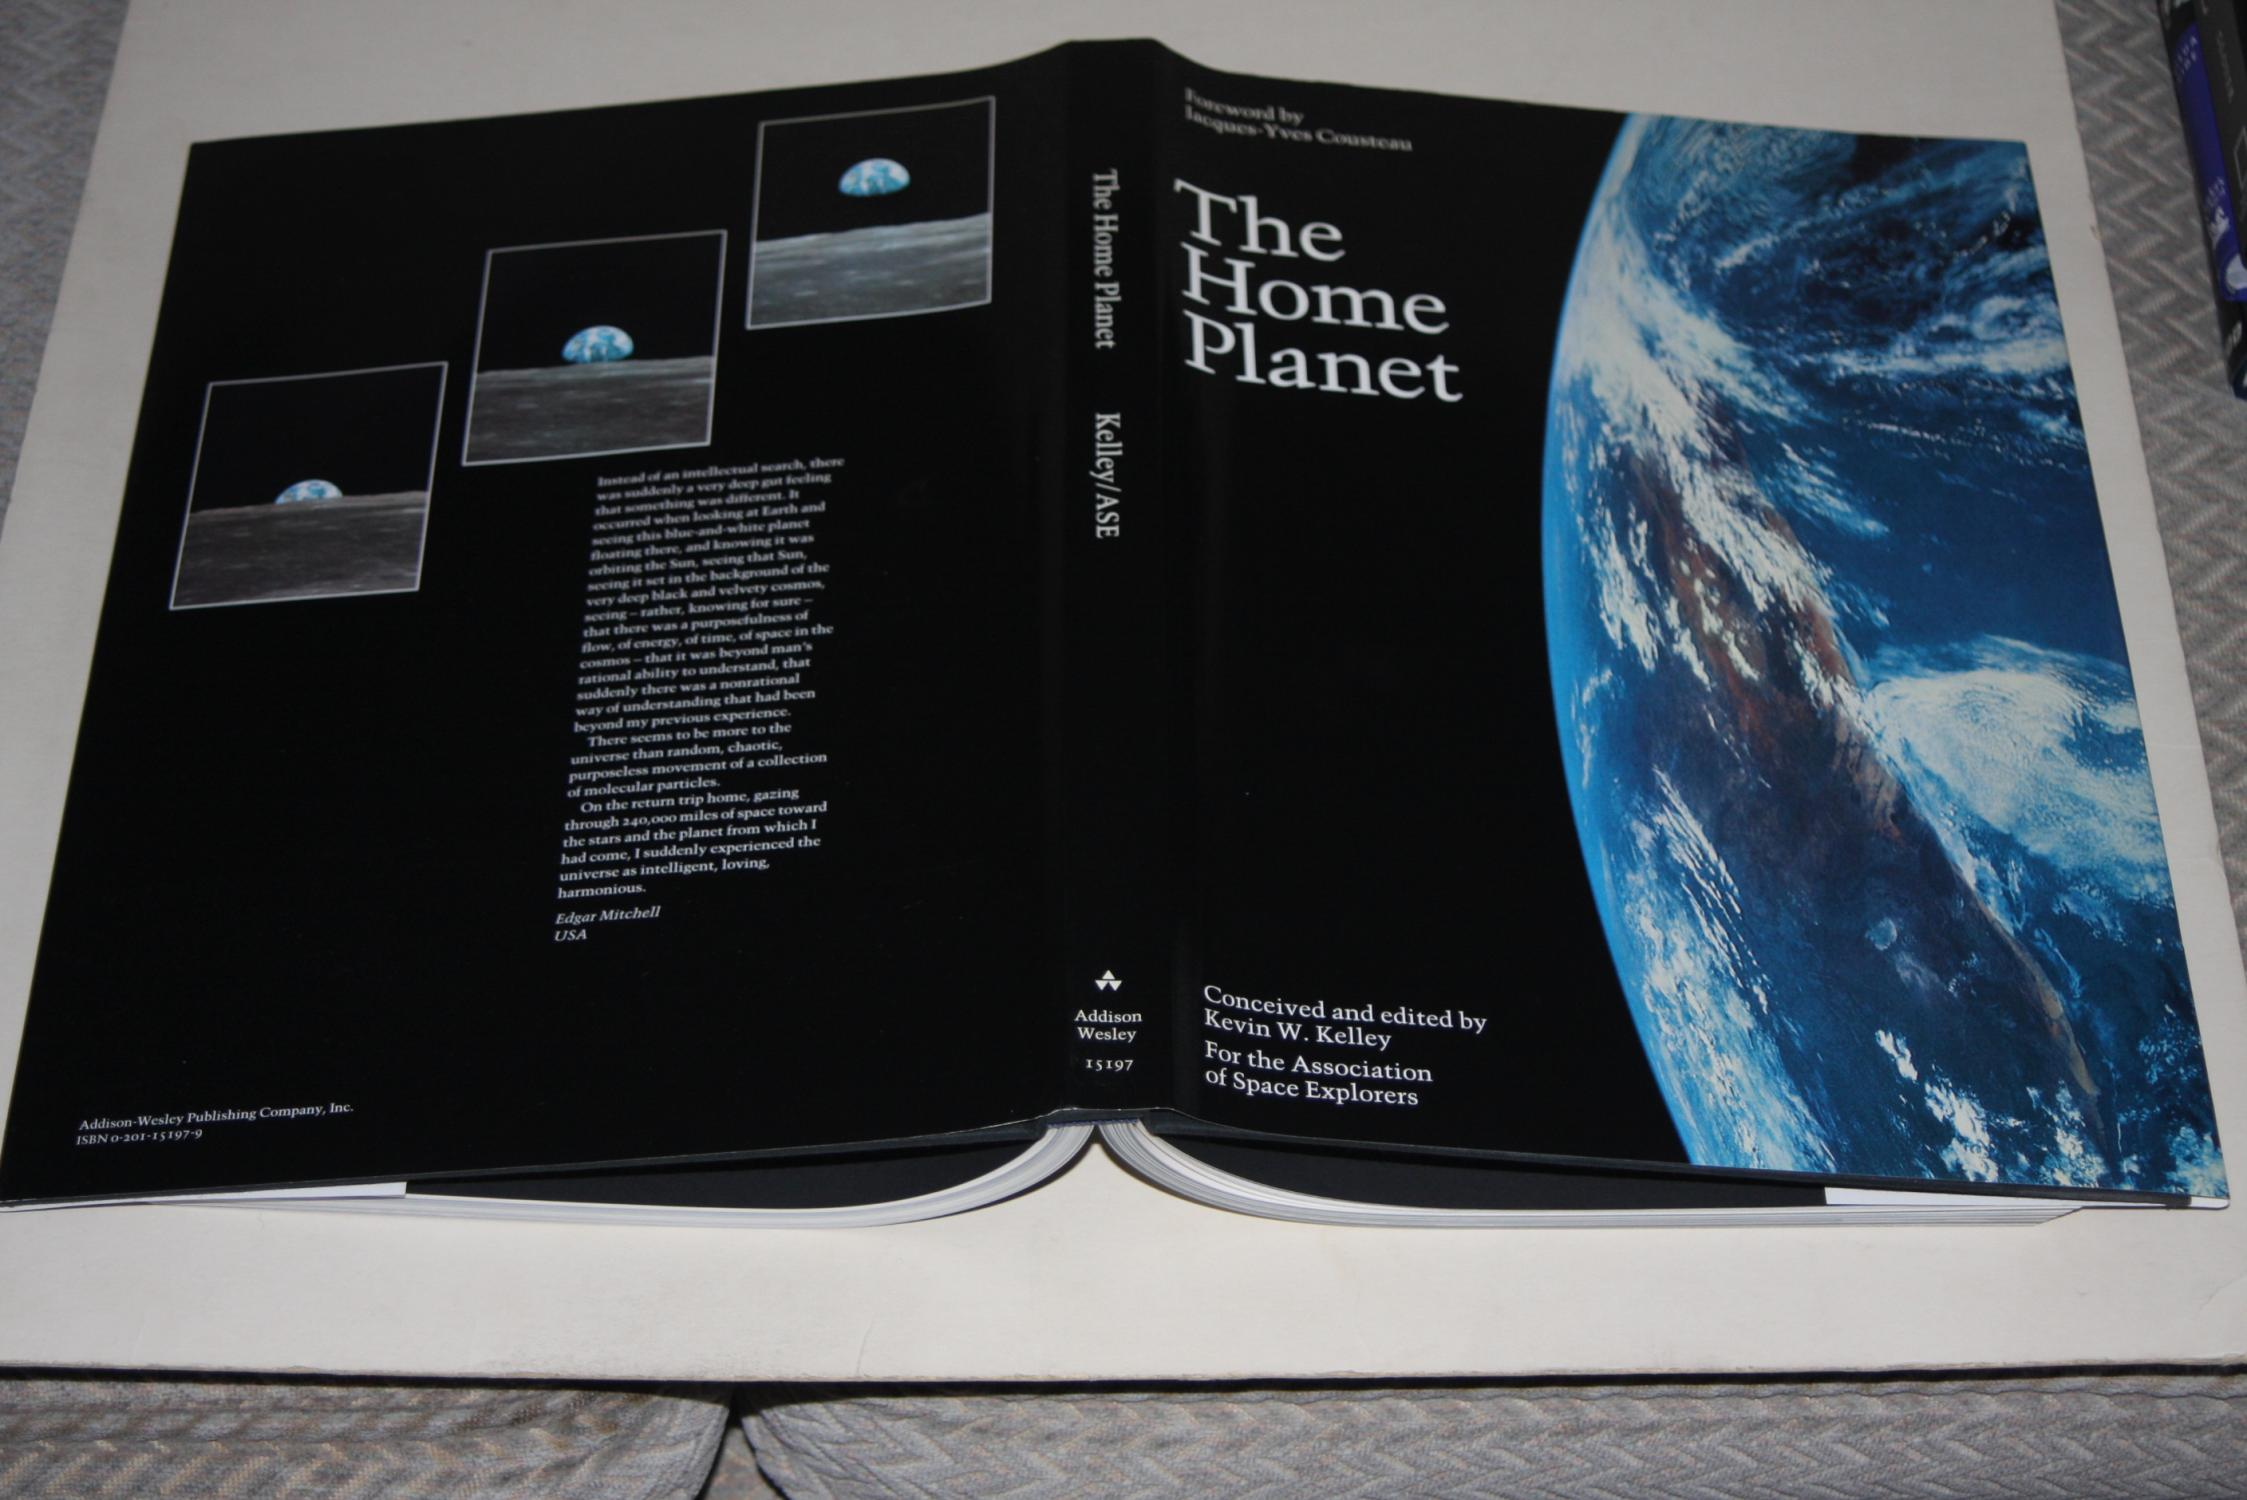 The Home Planet The Home Planet Kevin W Kelley on hamilton homes, stanley homes, brandon homes, ryan homes, katie homes, nevada homes, lawton homes, lewis homes, johnson homes, hull homes, allen homes, elliott homes, spencer homes, green homes, hampton homes, david homes, wood homes, montana homes, randall homes,